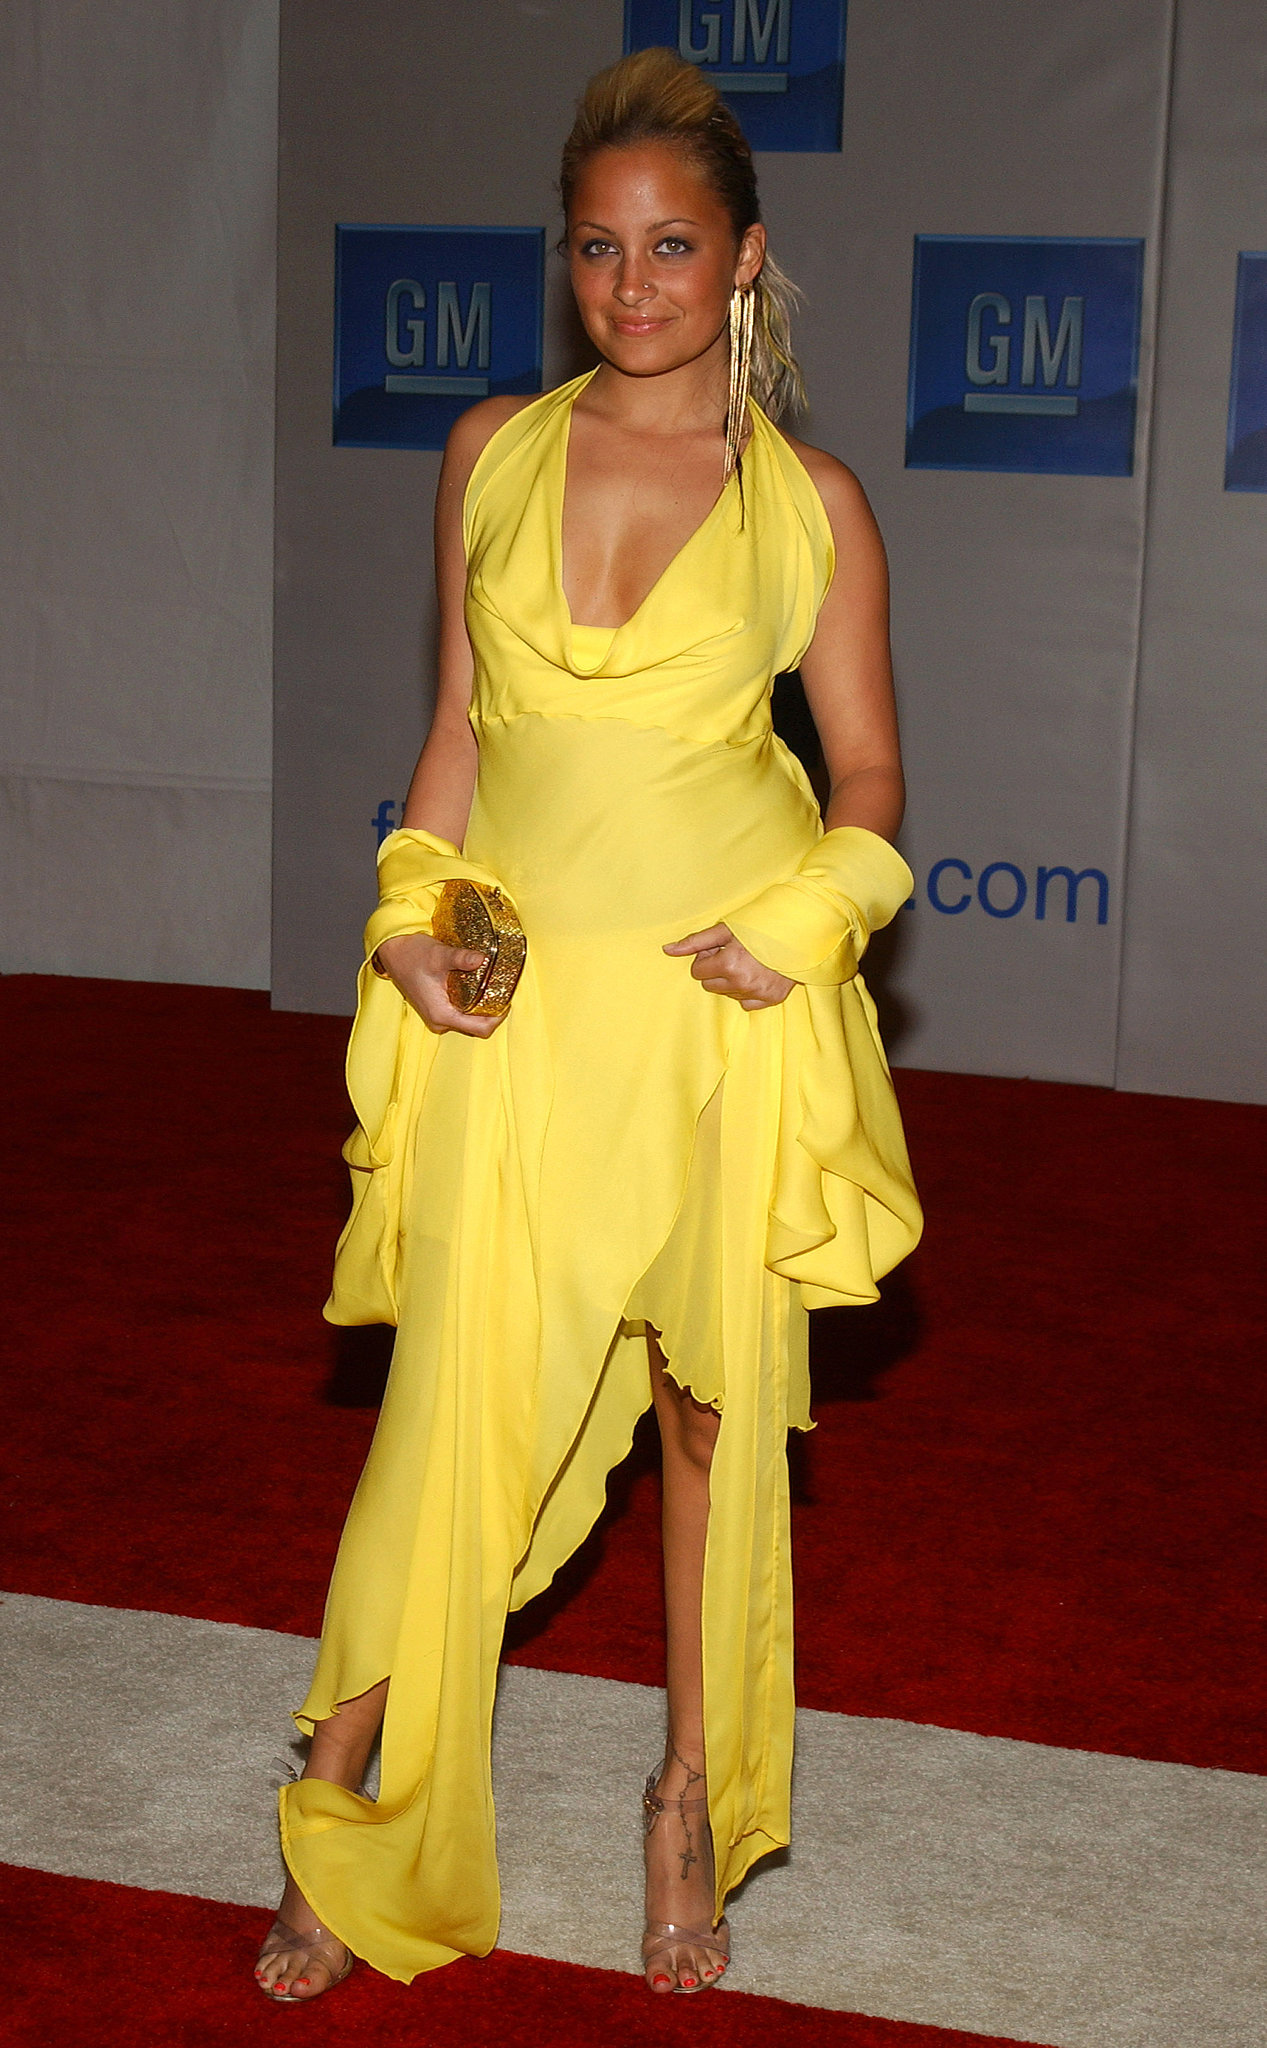 Nicole Richie was anything but mellow in this head-to-toe yellow look at a GM event in Hollywood back in February 2004.